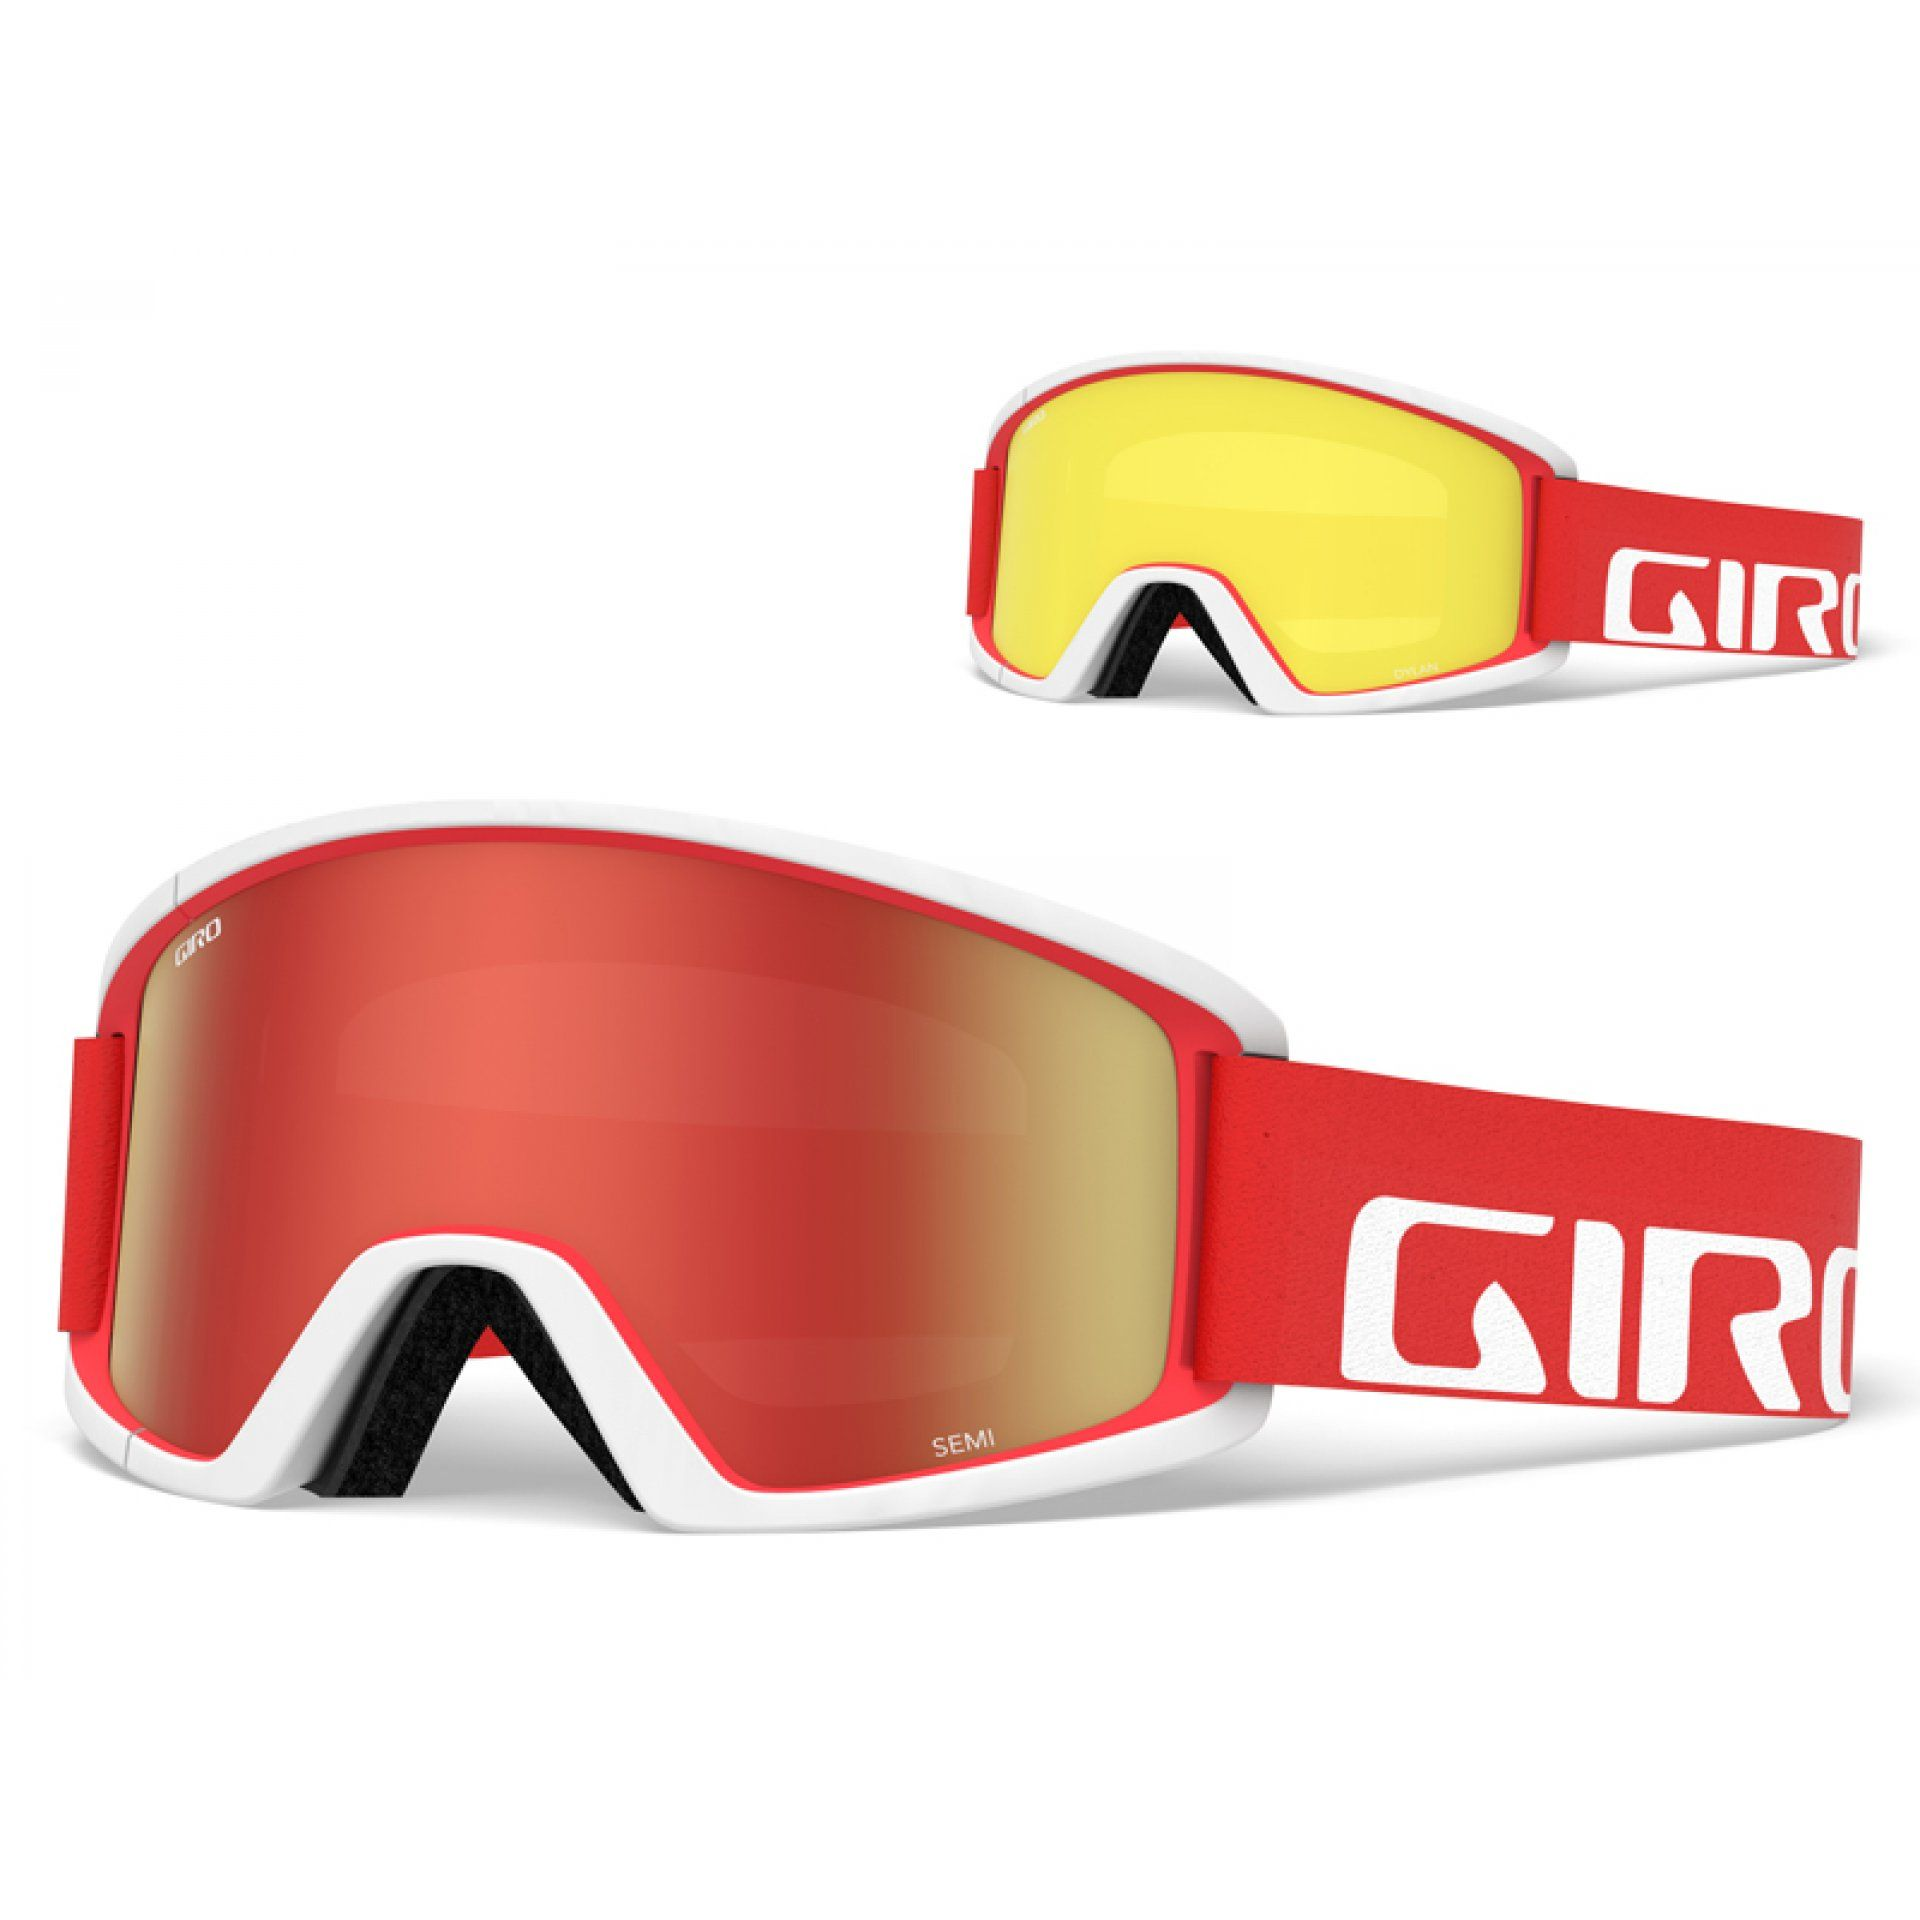 GOGLE GIRO SEMI RED WHITE APEX|AMBER SCARLET 1